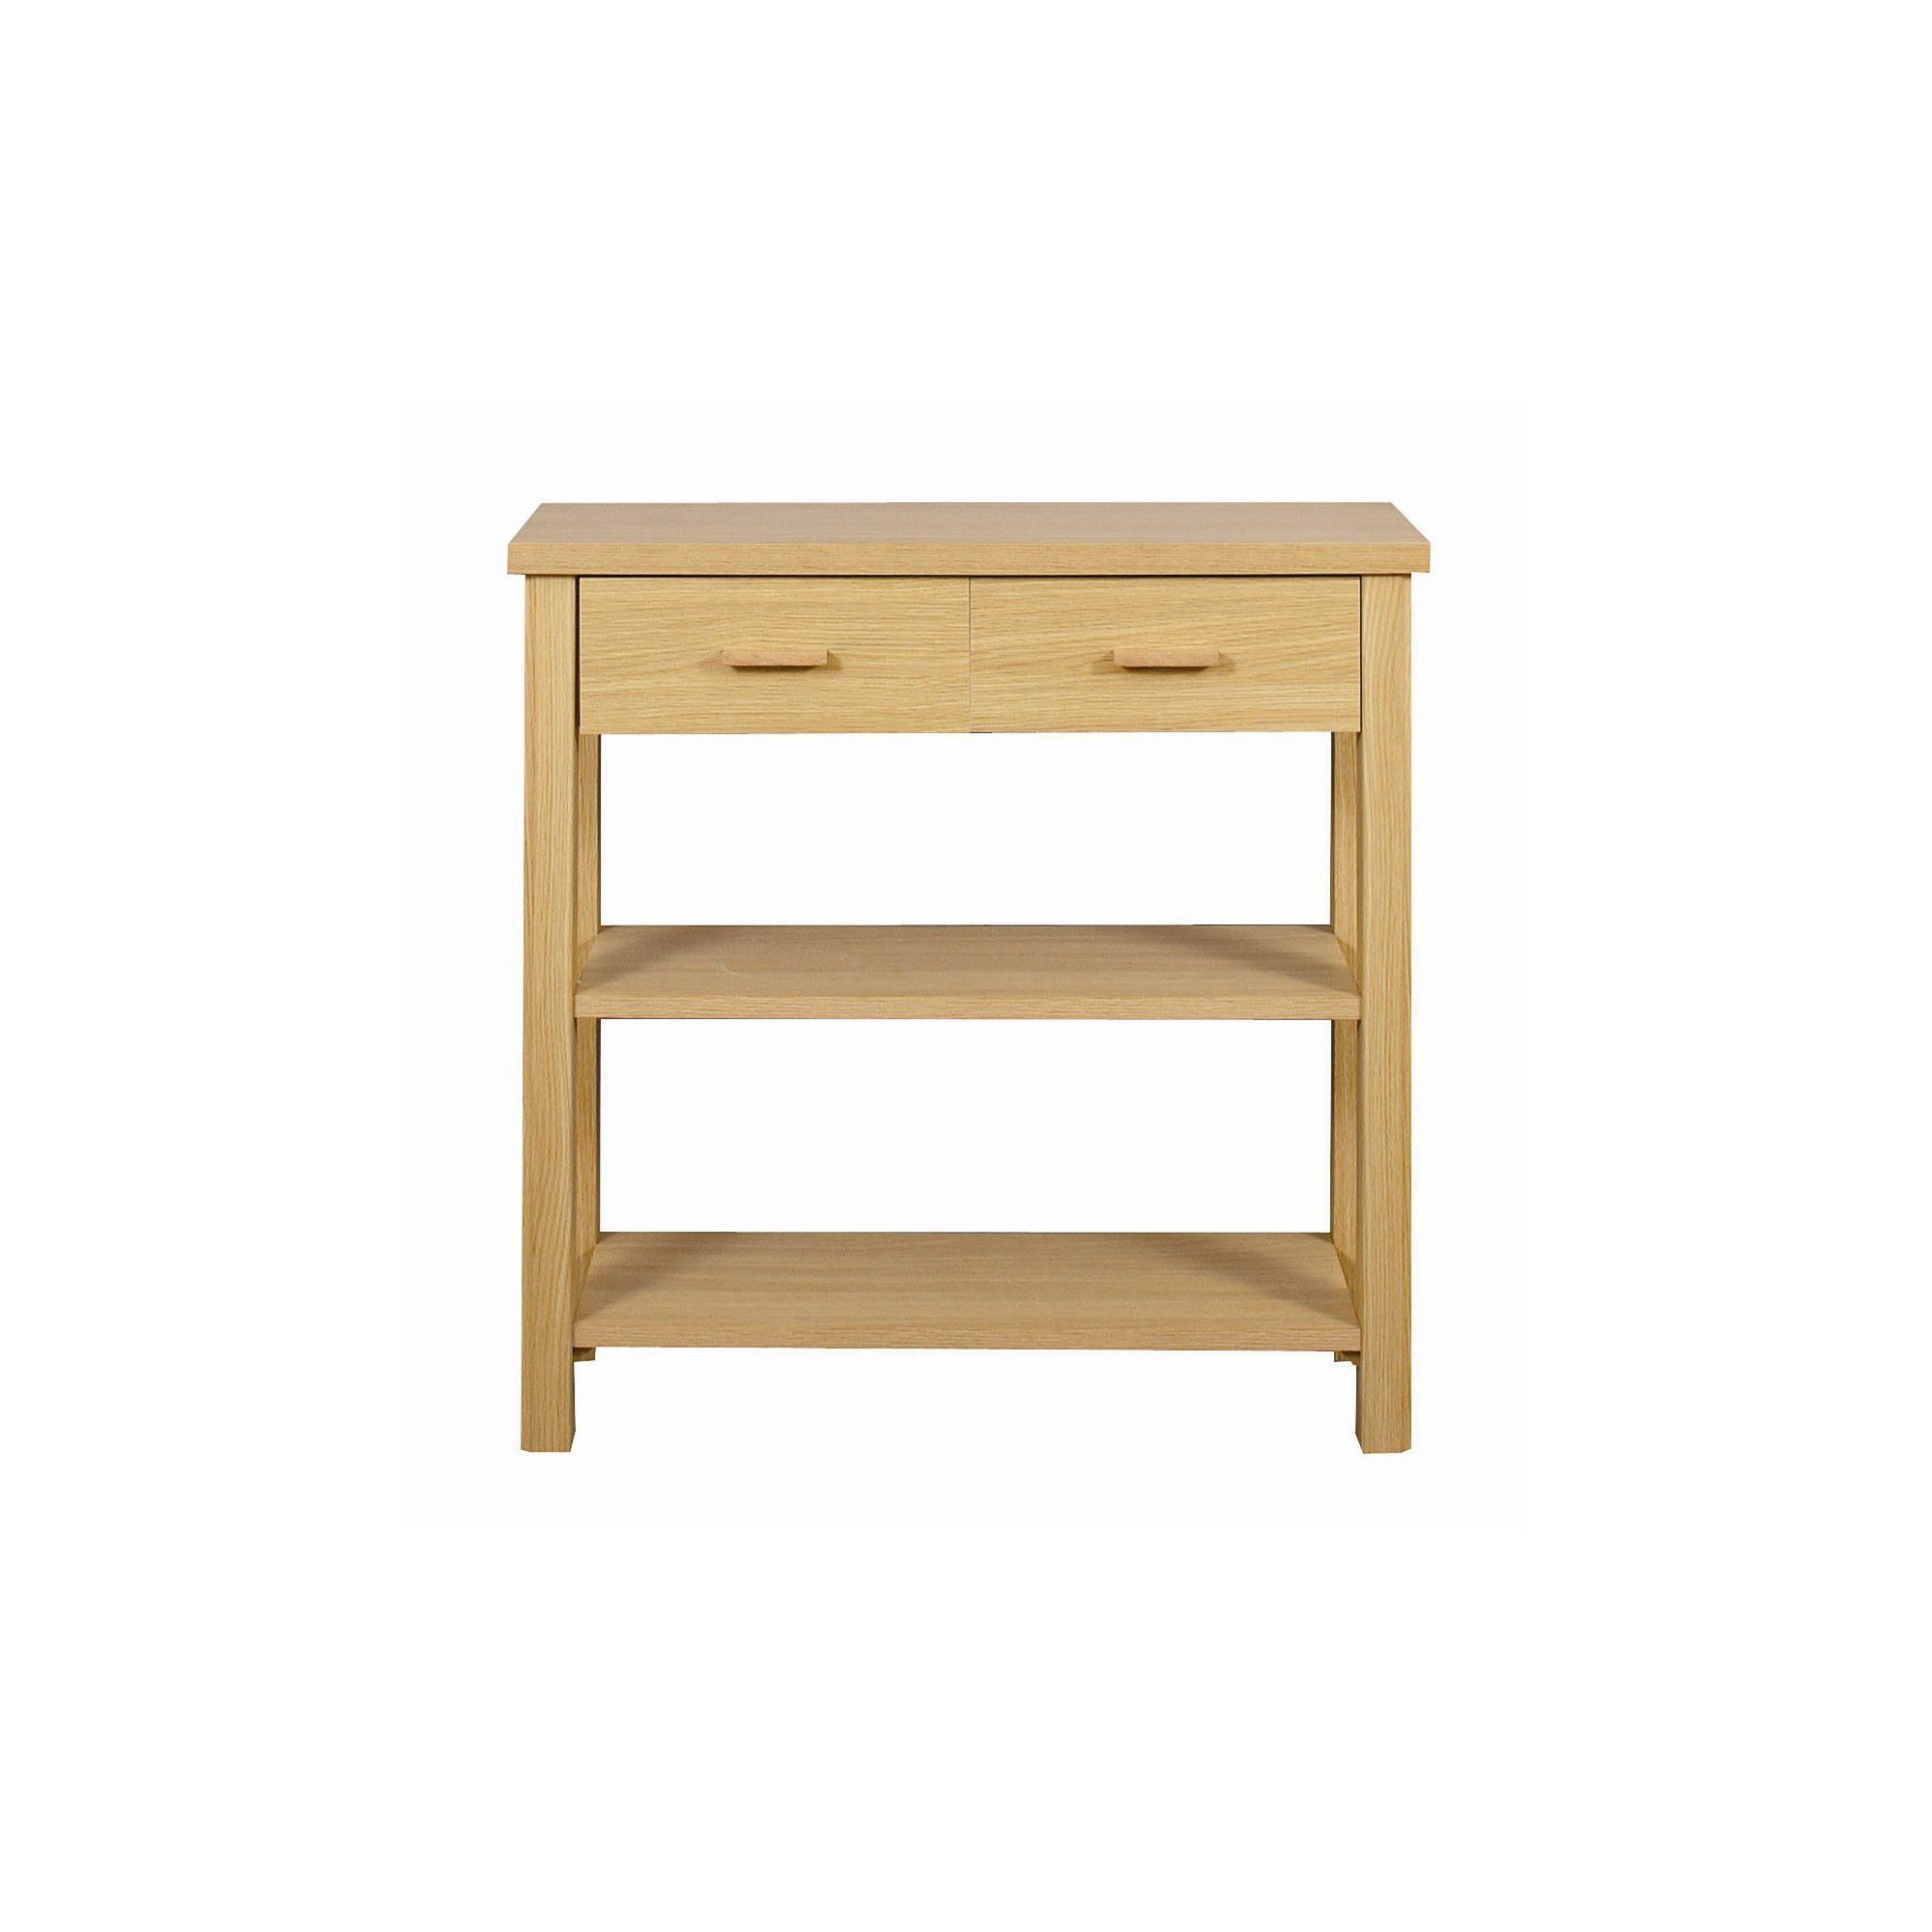 Other Caxton Huxley 4 Leg Console Table in Light Oak